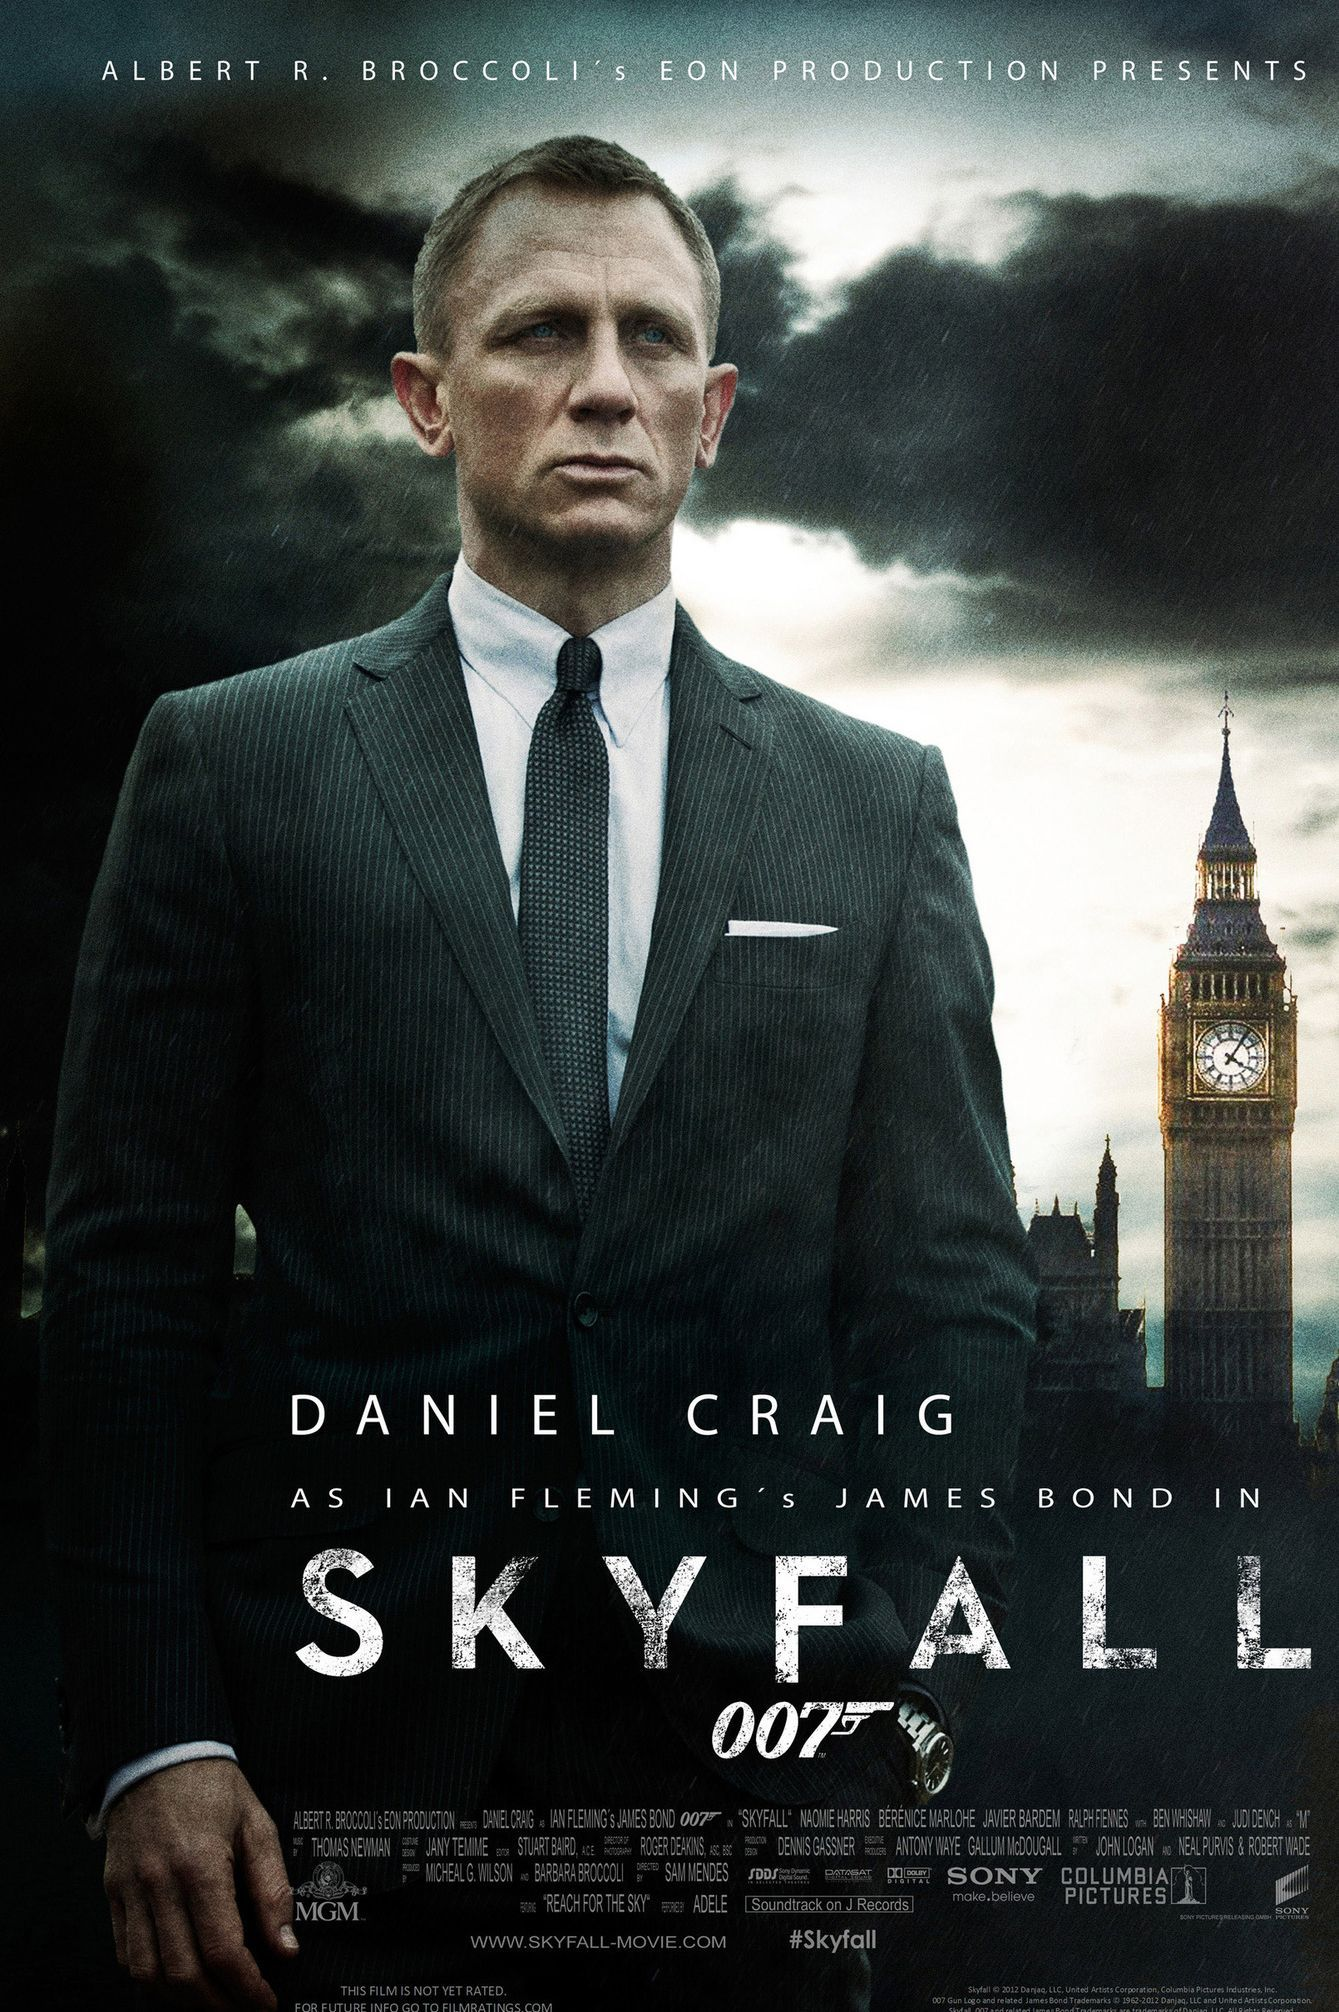 Here S What S Leaving Netflix At The End Of May James Bond Movie Posters James Bond Movies Bond Movies